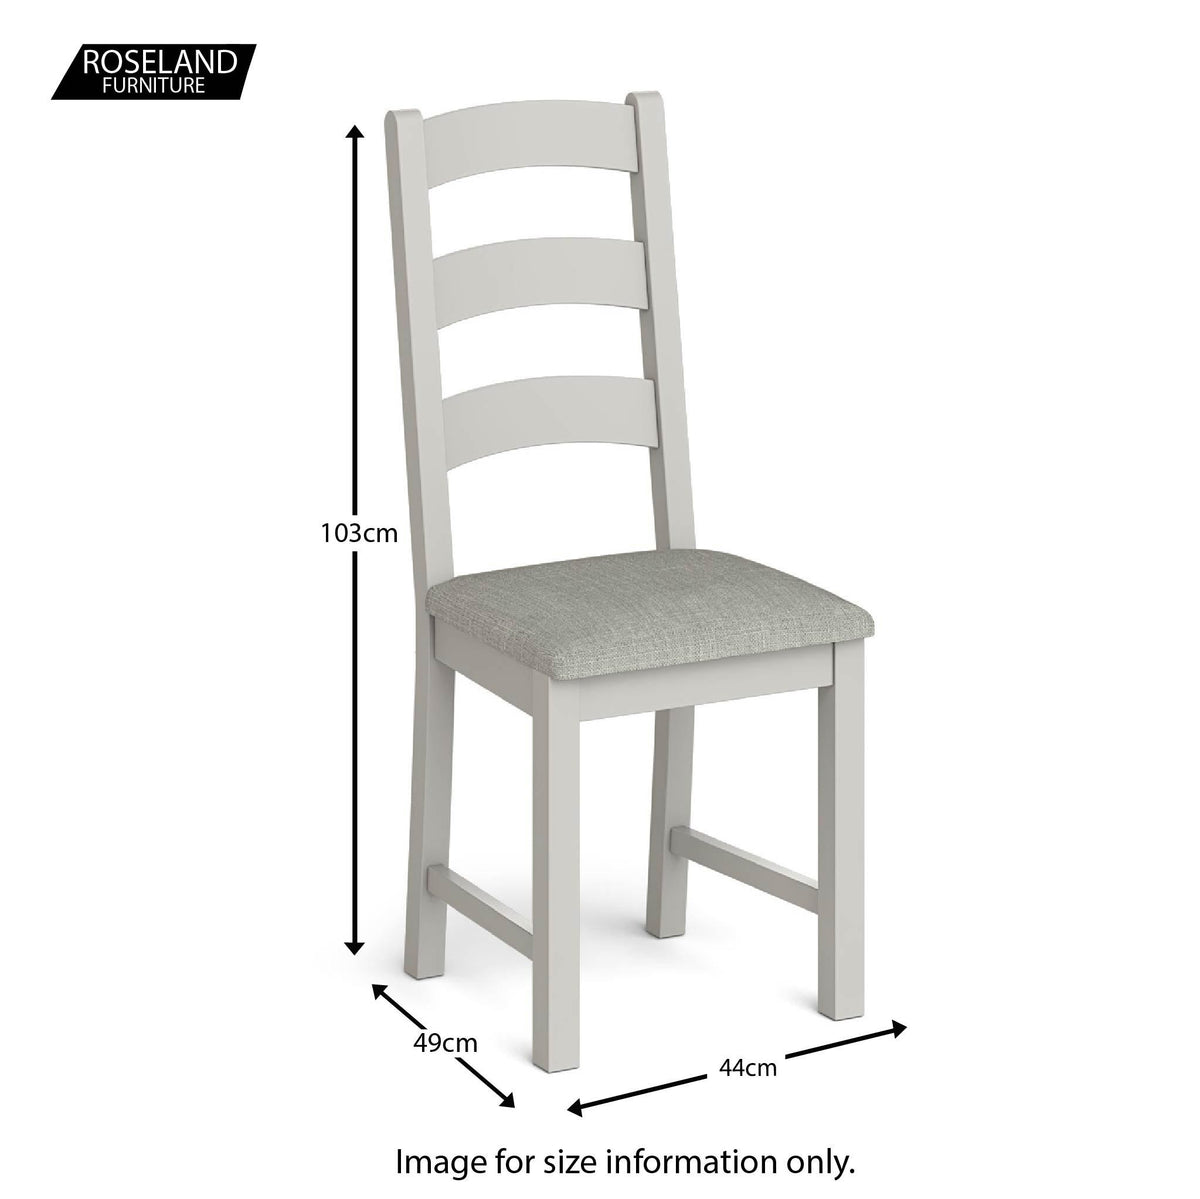 Lundy Grey Ladder Back Dining Chair - Size guide